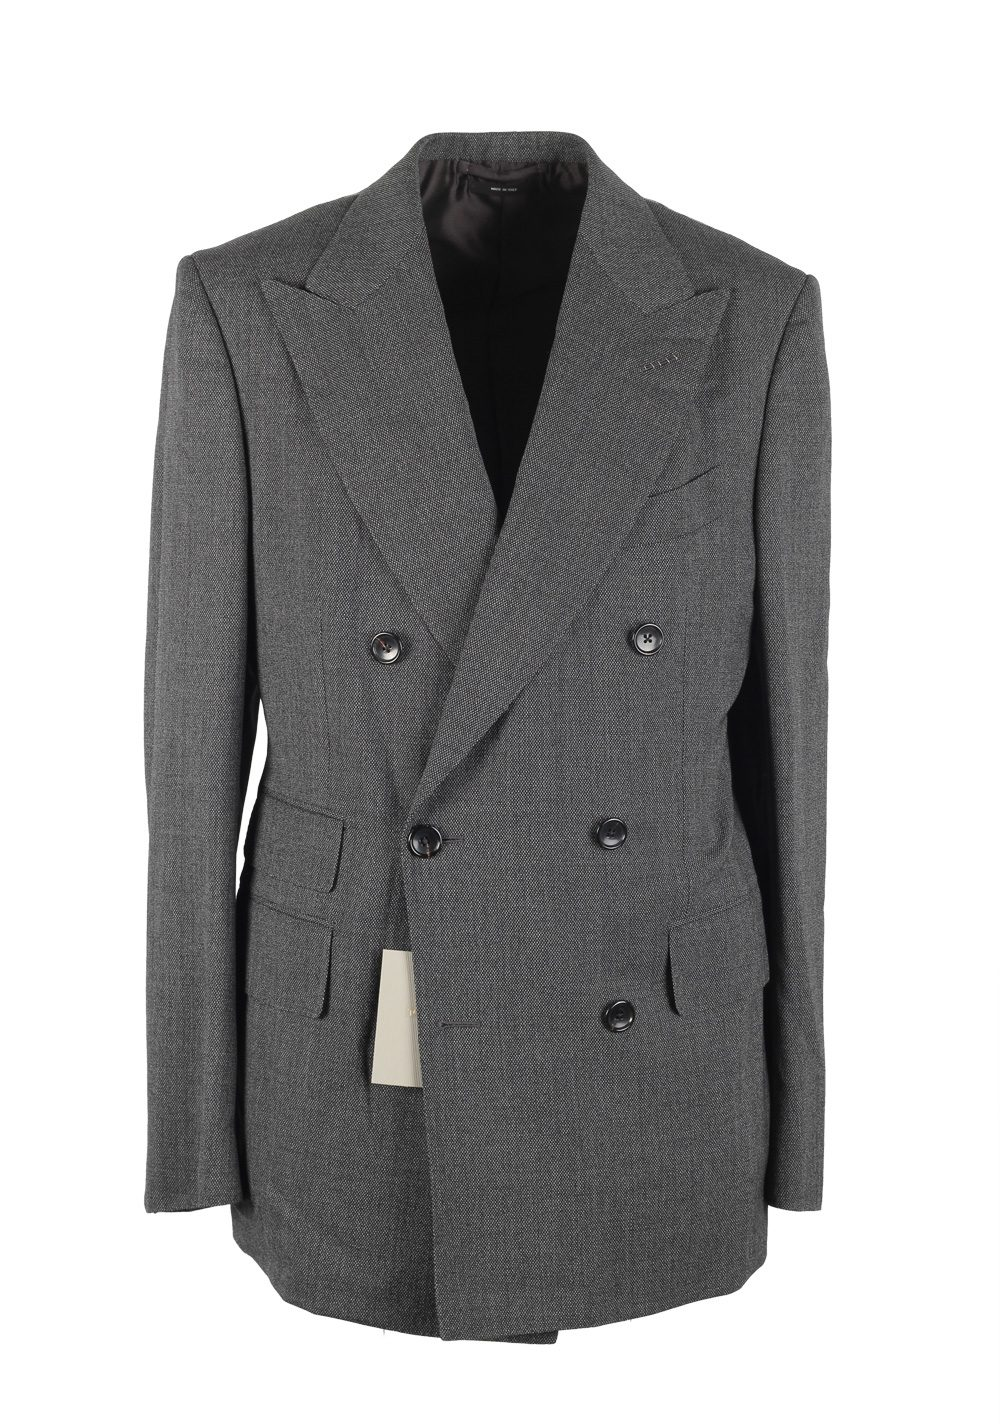 TOM FORD Shelton Gray Double Breasted Suit Size 48 / 38R U.S. In Wool | Costume Limité